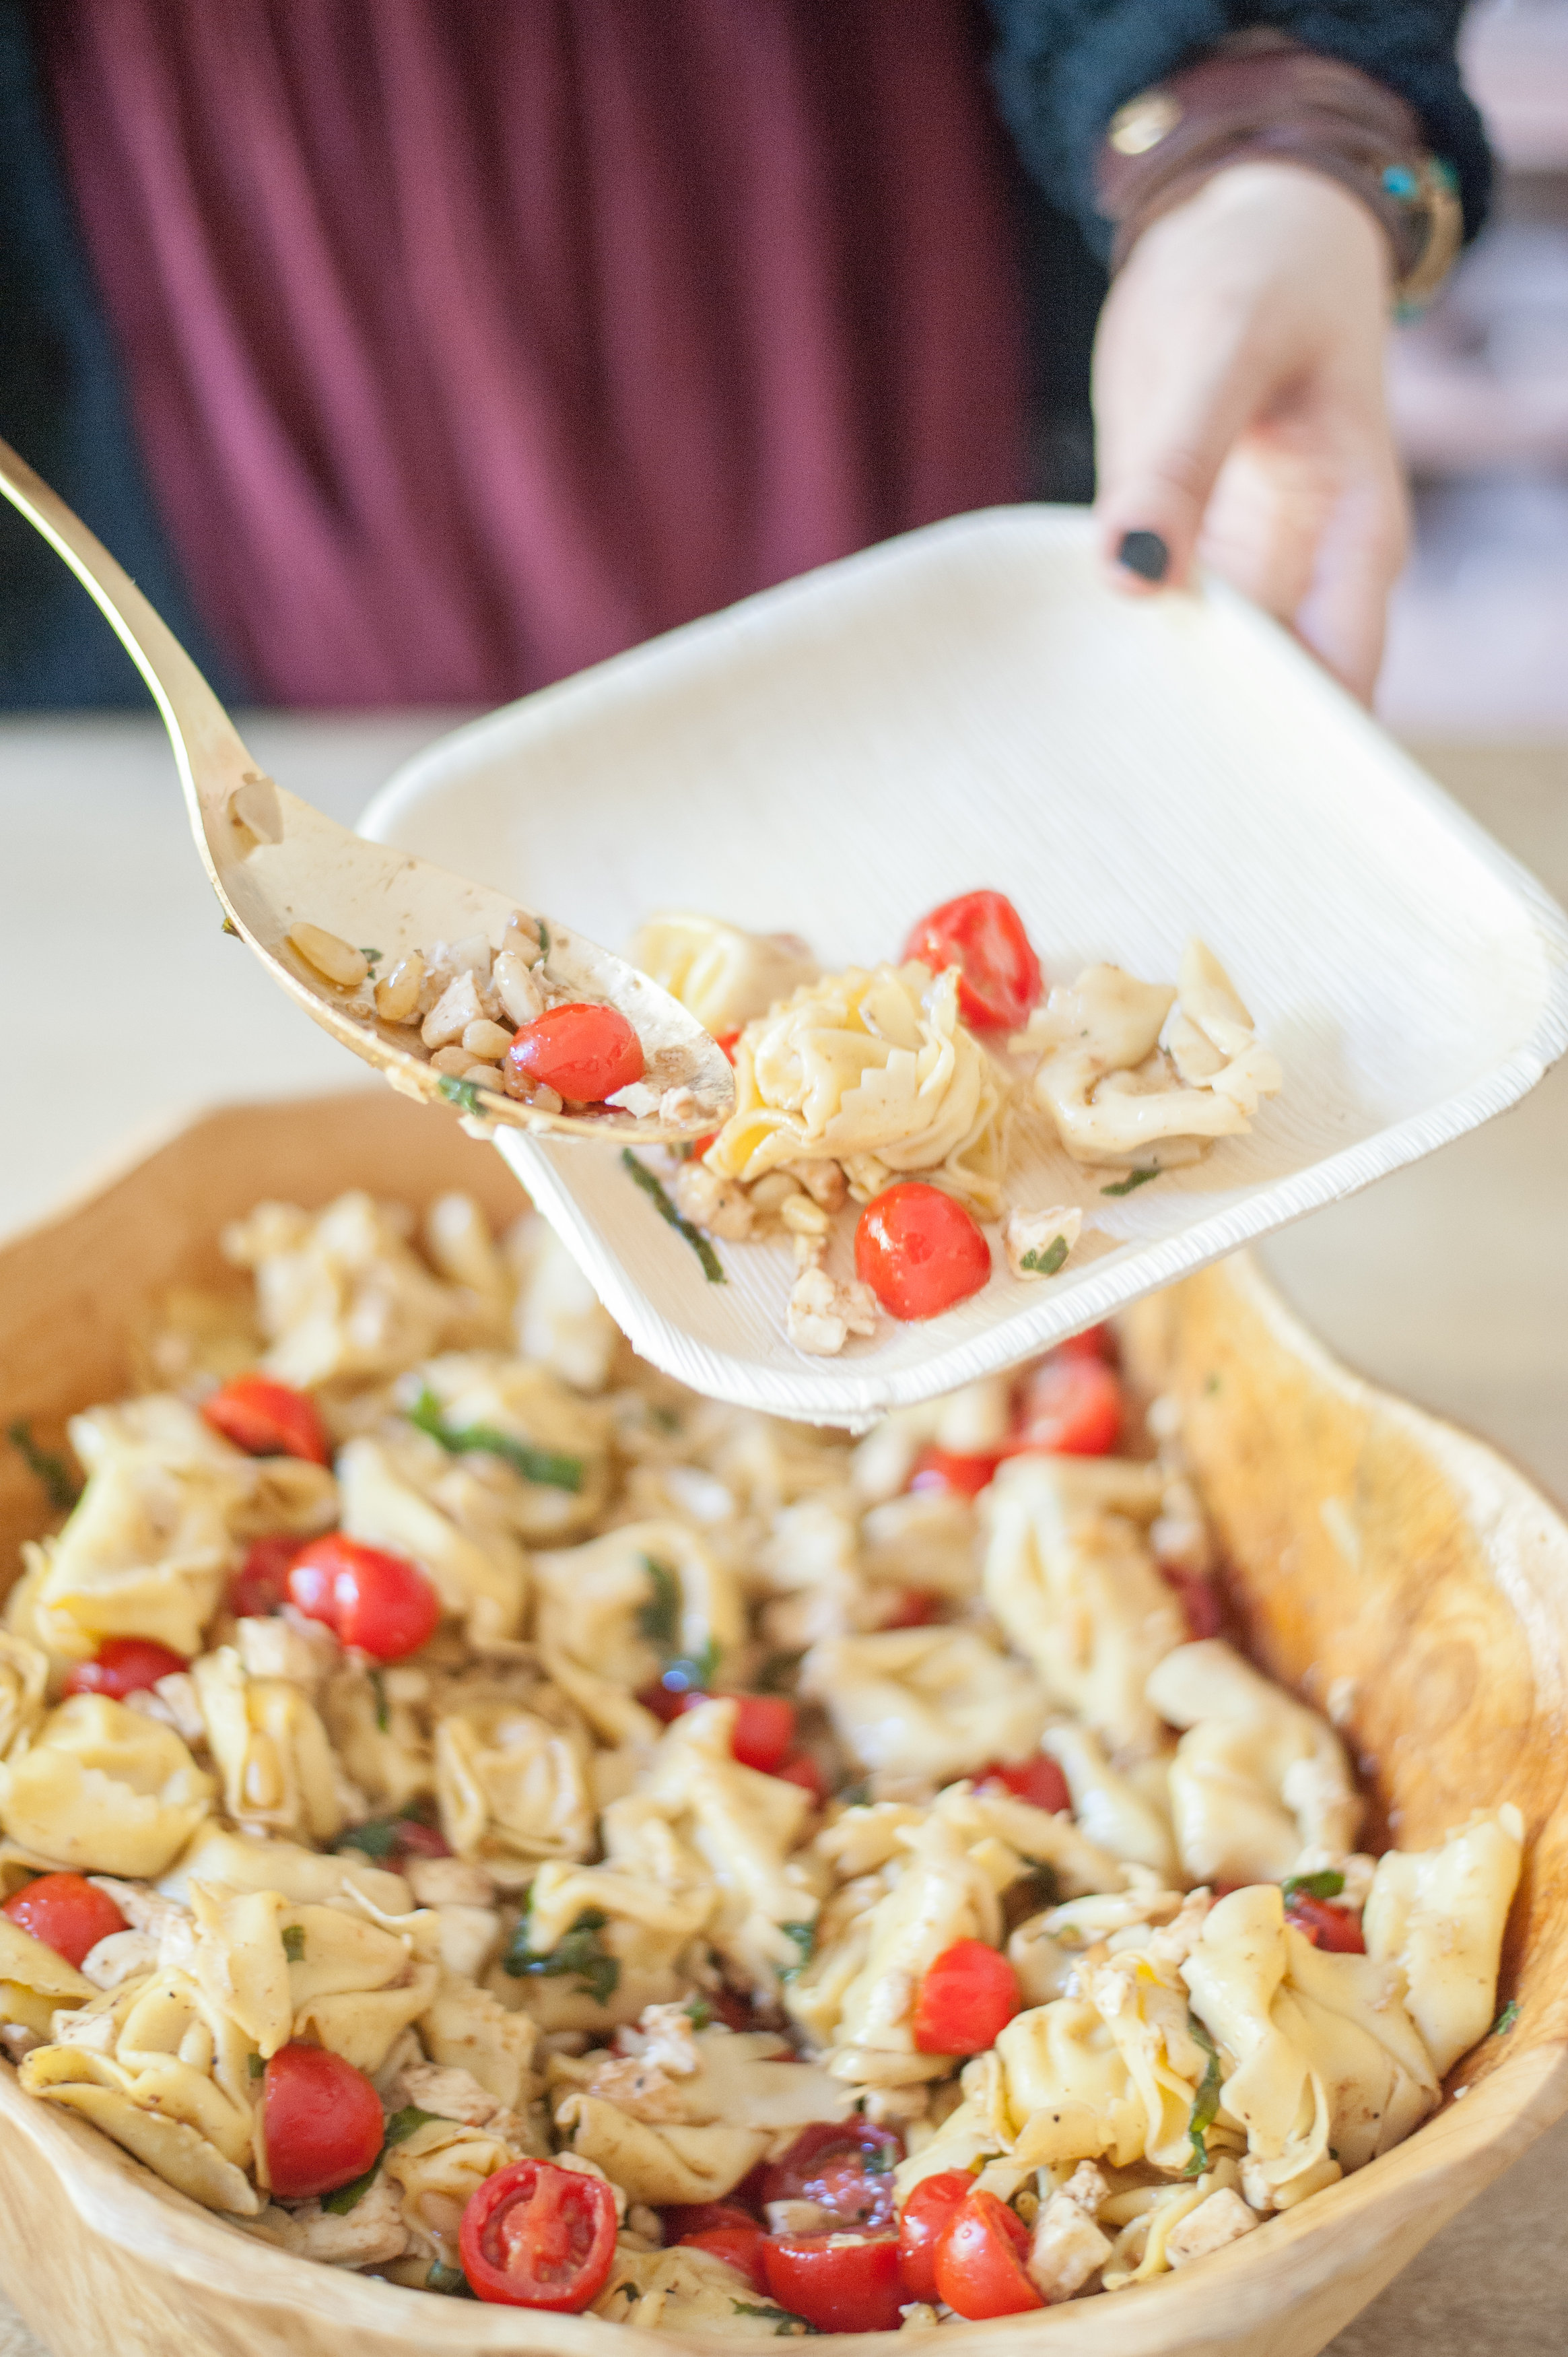 Lunch Ideas Your Kids Will Love, Caprese Tortellini Salad